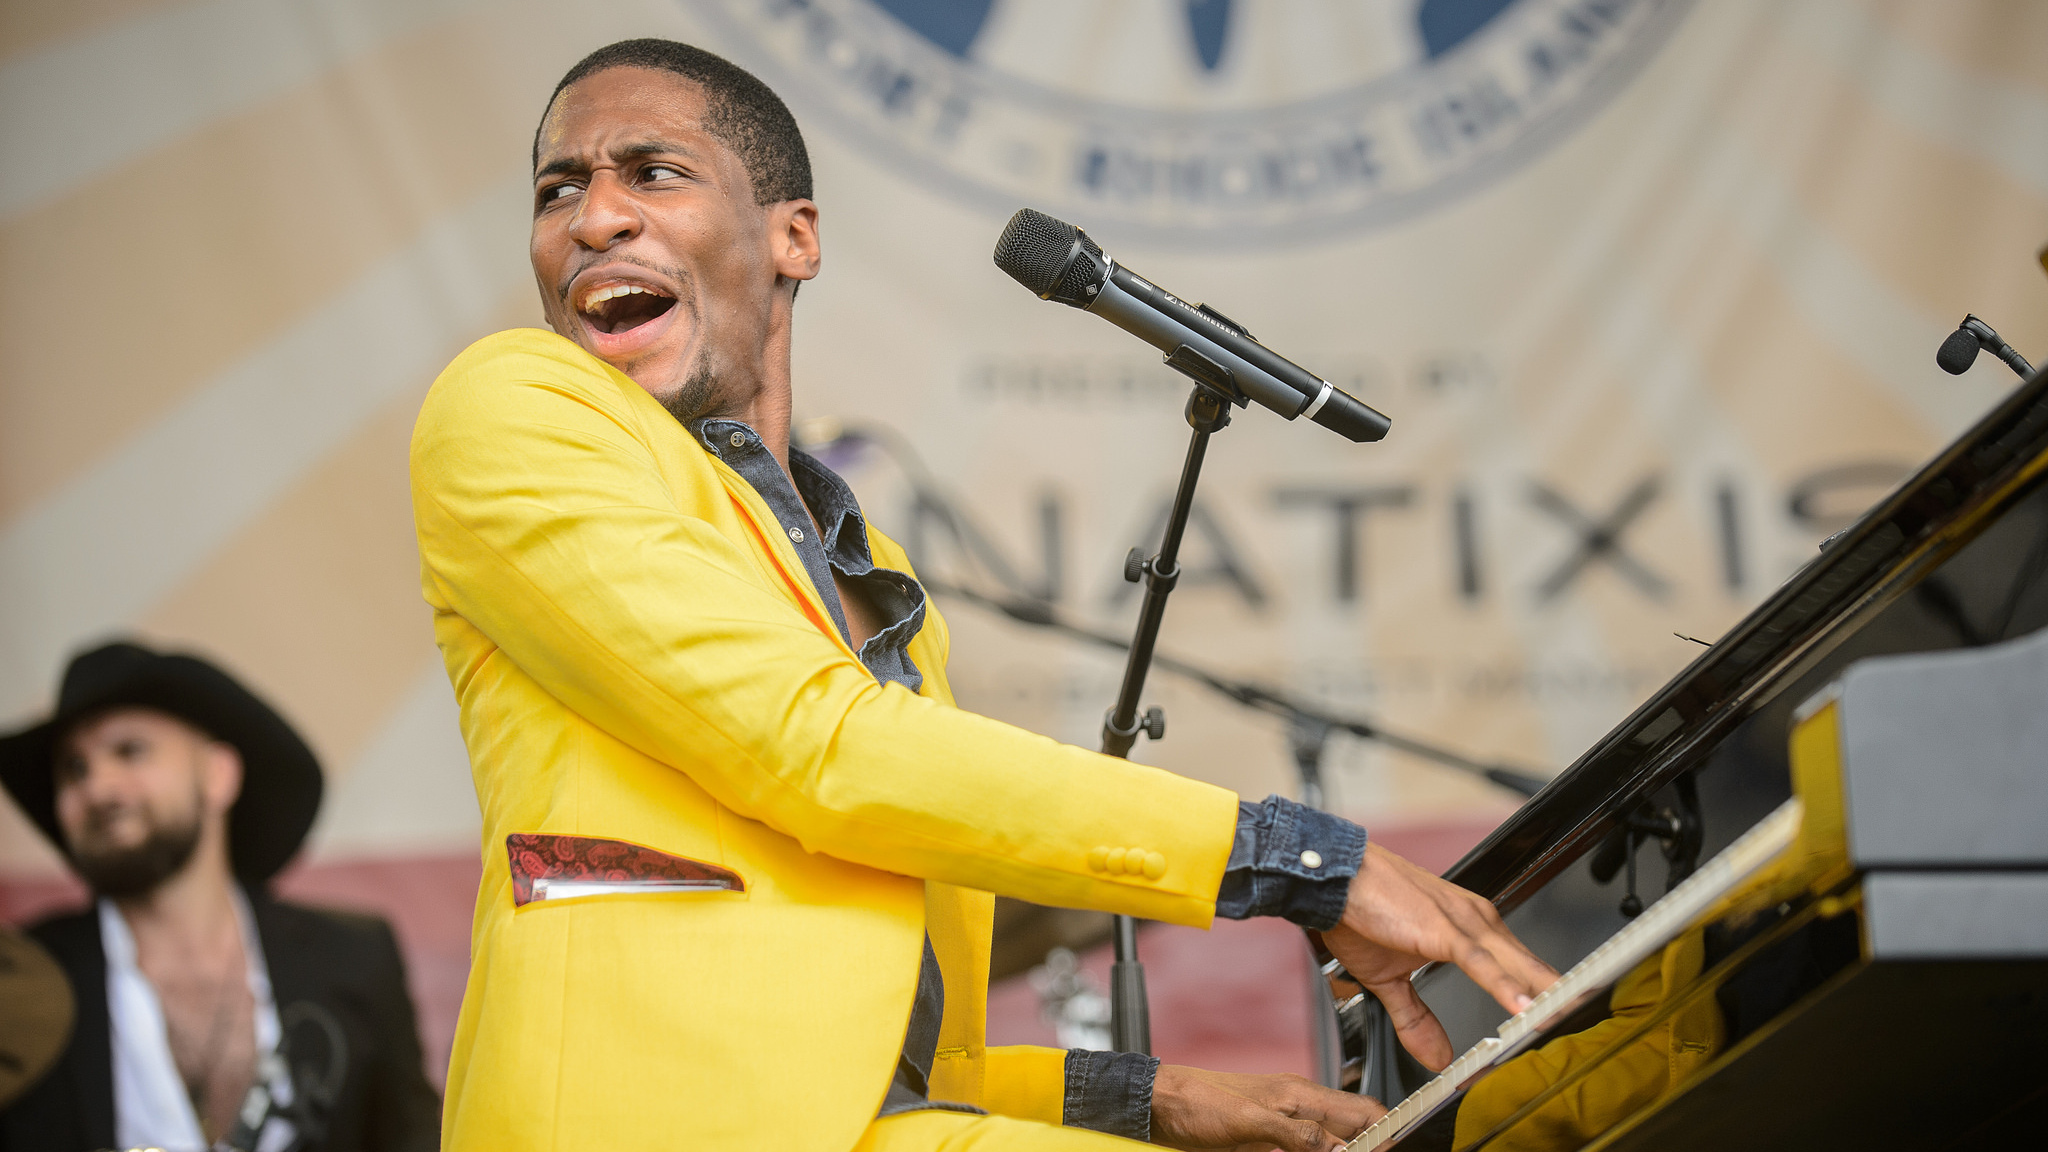 Jon Batiste And The Legacy Of Jazz On Late-Night TV